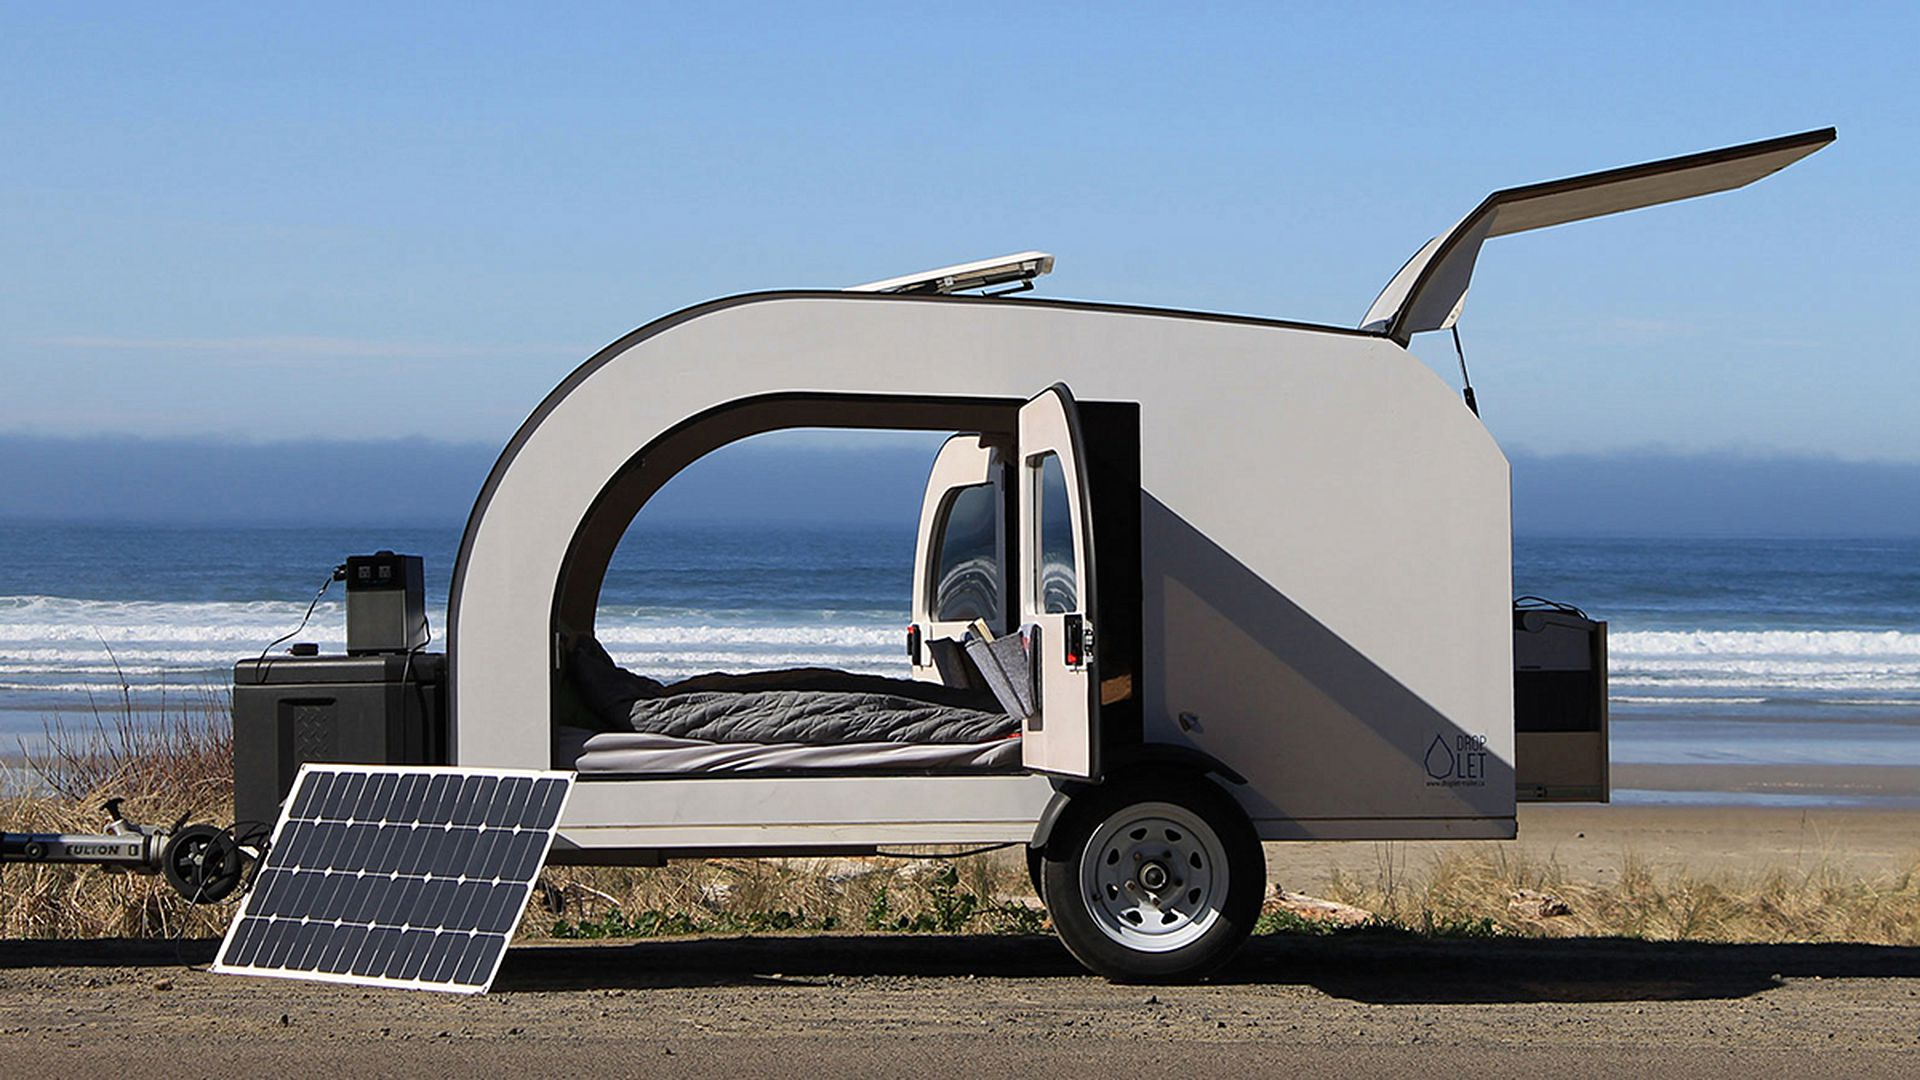 Tiny camper trailer can be towed by almost any car